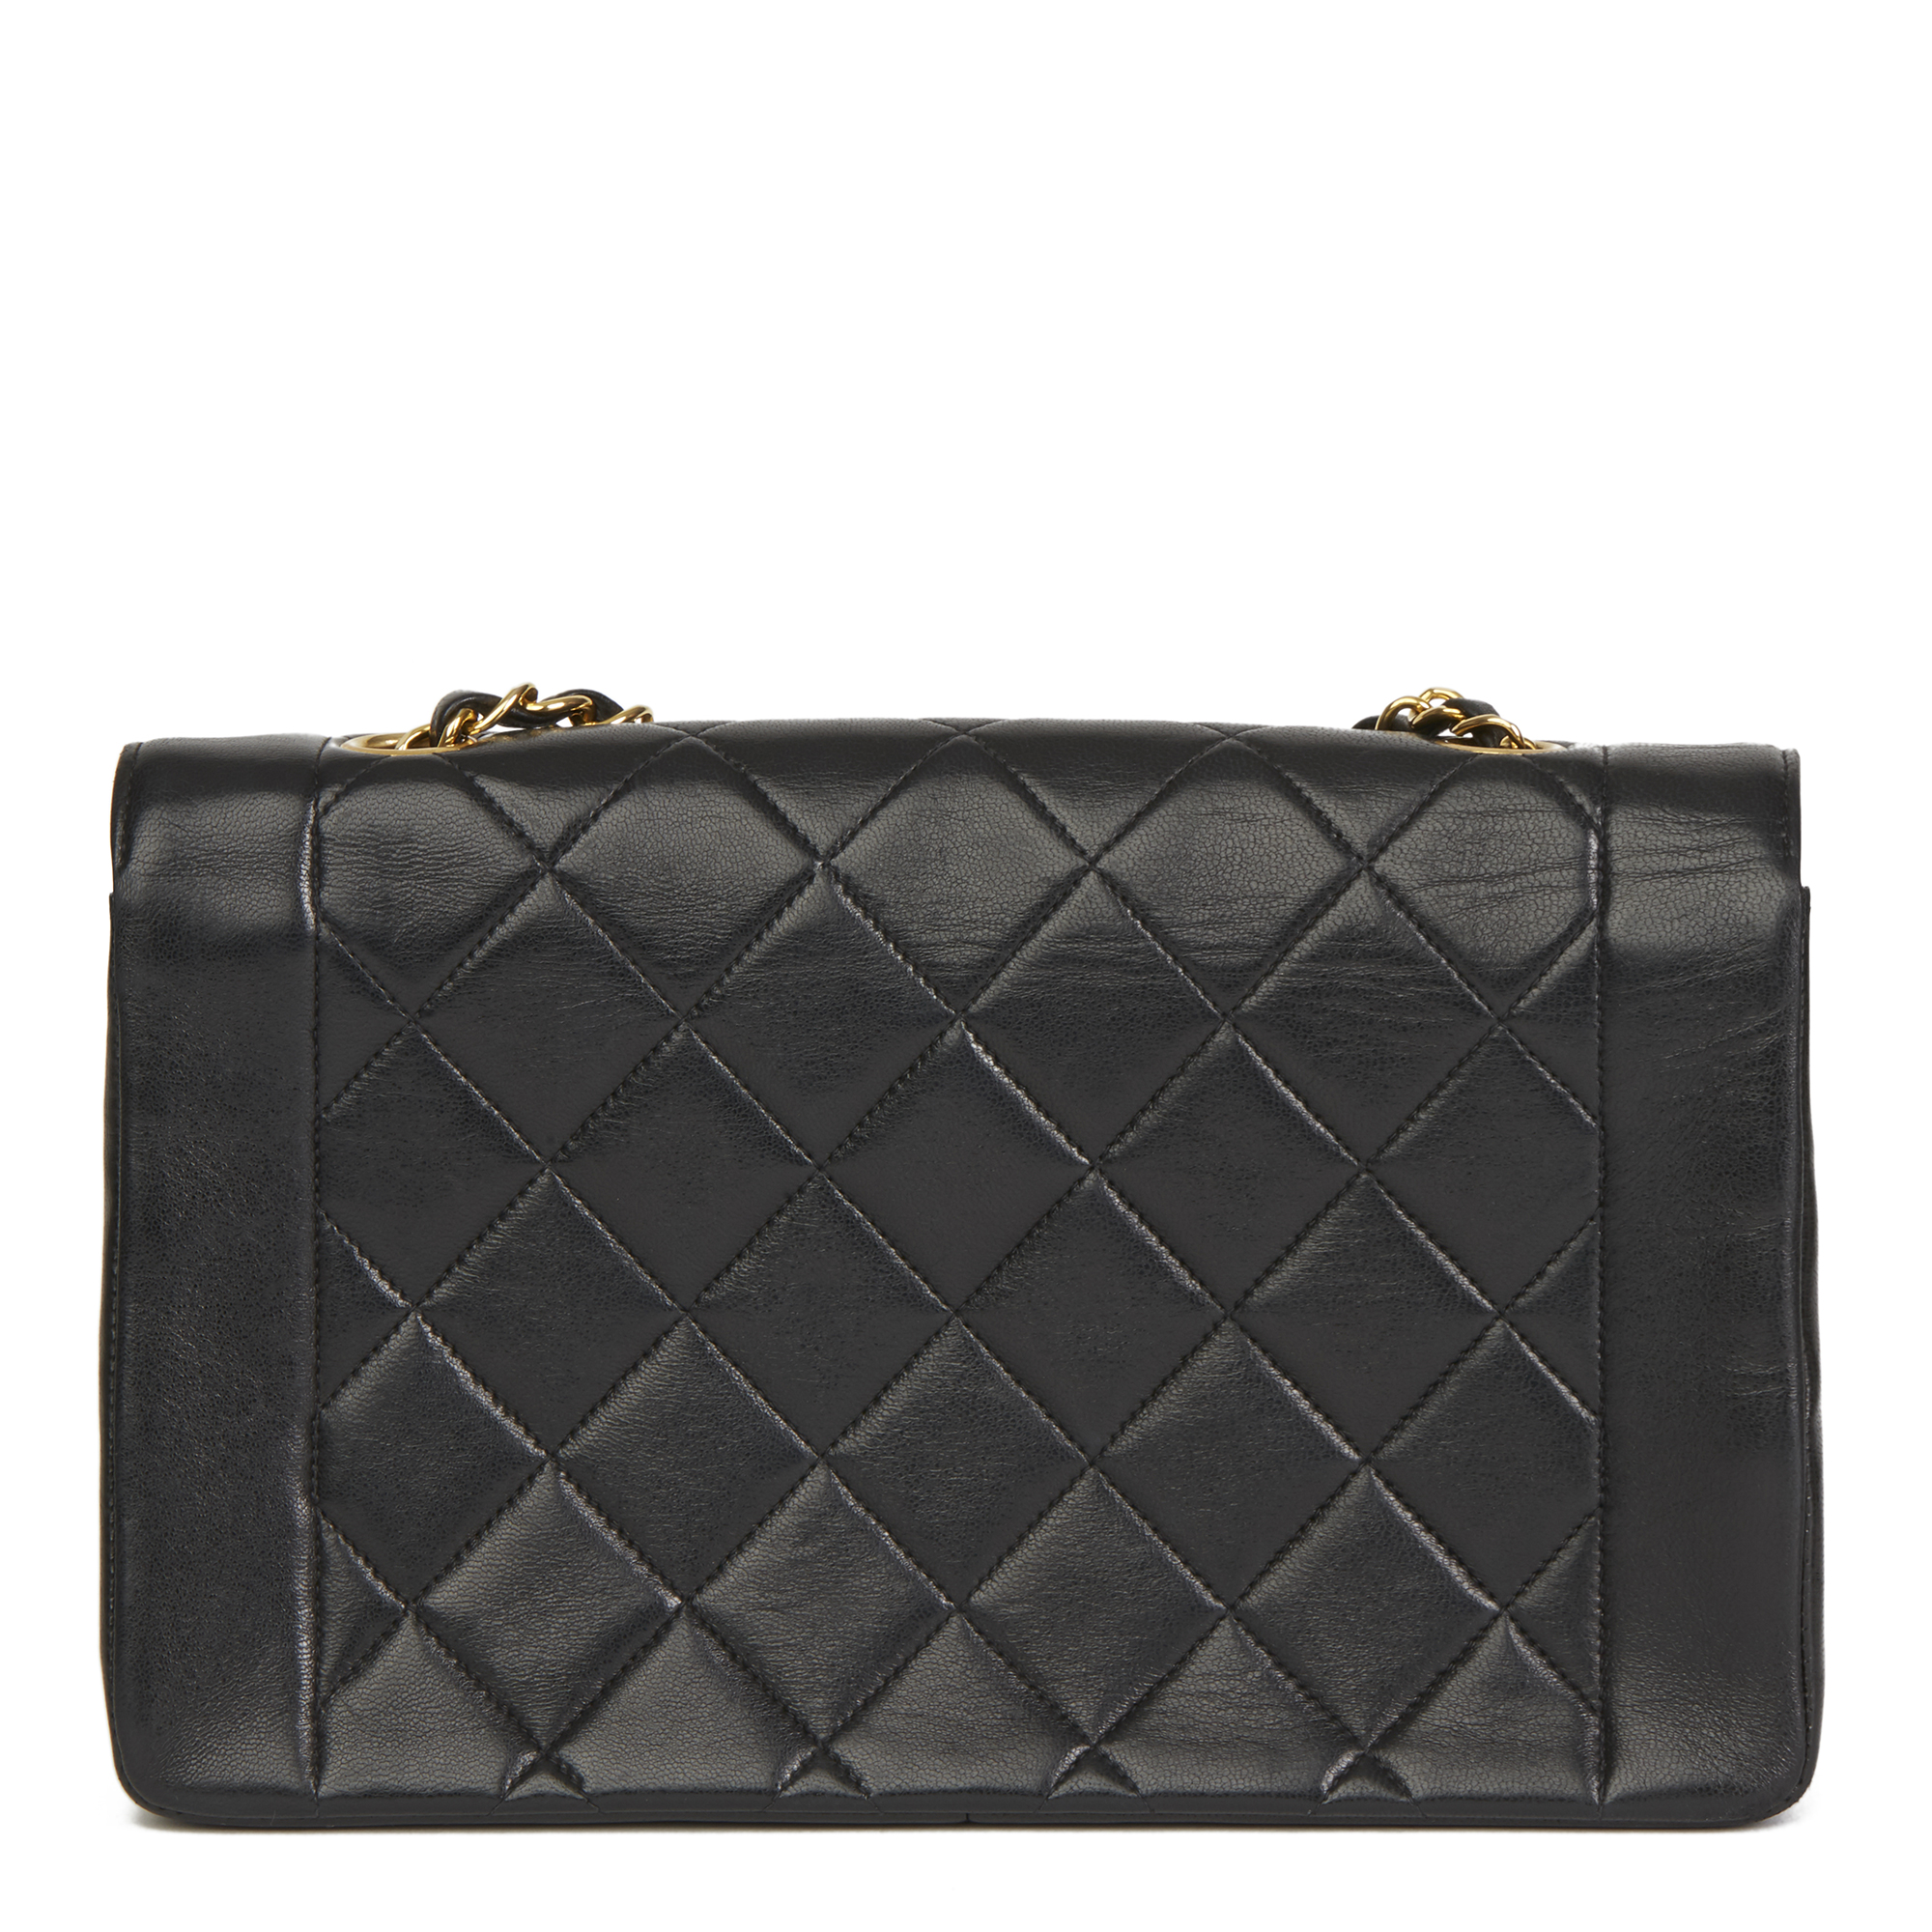 f0cc579fc516 Details about CHANEL BLACK QUILTED LAMBSKIN VINTAGE MEDIUM DIANA CLASSIC  SINGLE FLAP BAG